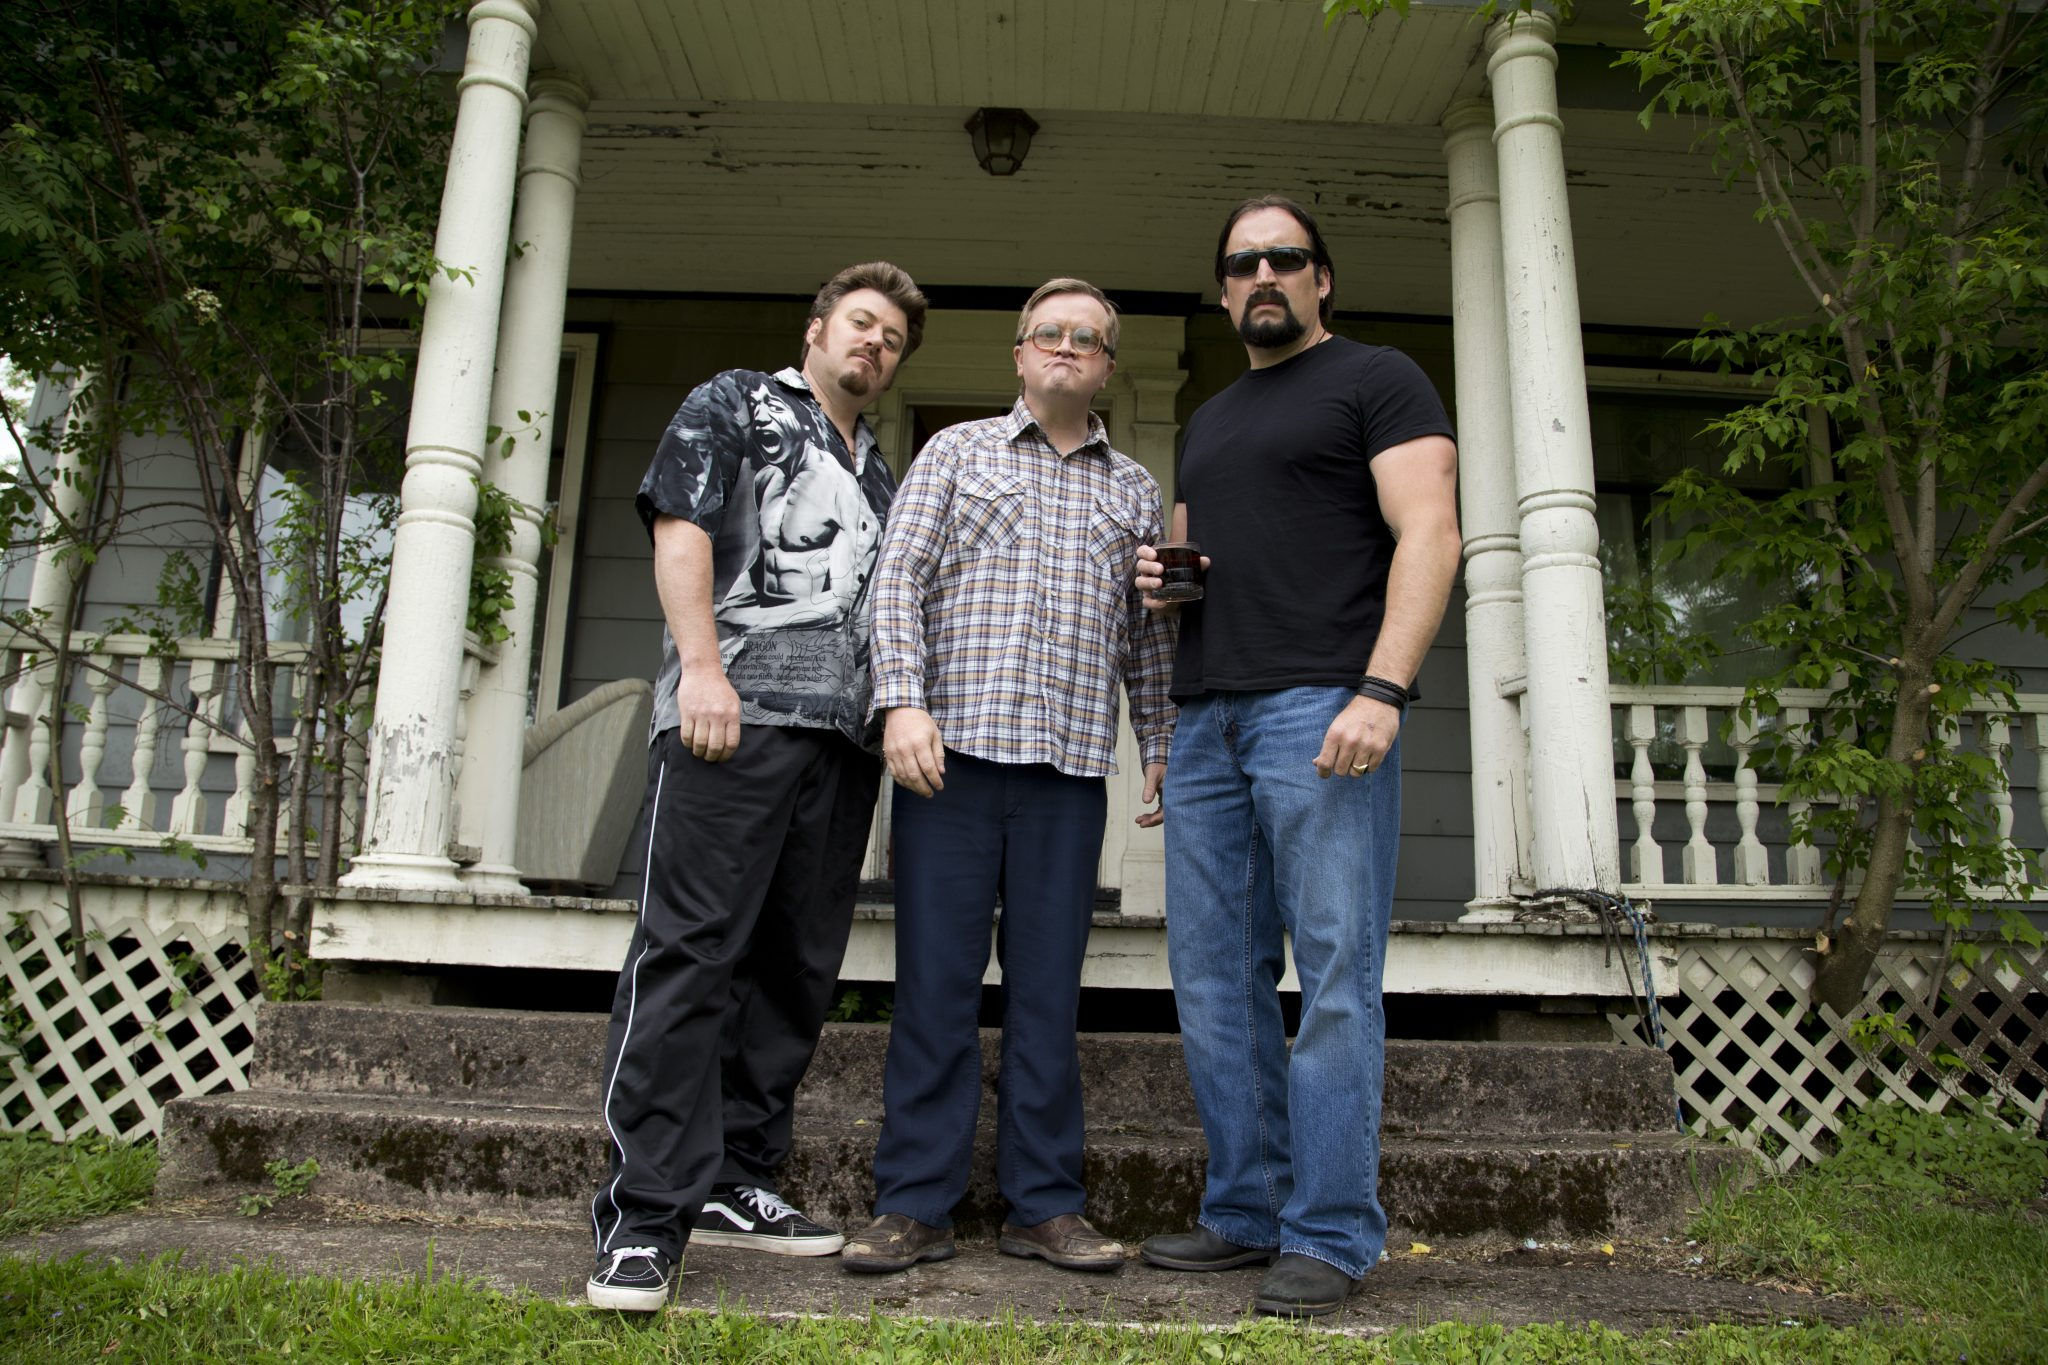 The cast of Trailer Park Boys